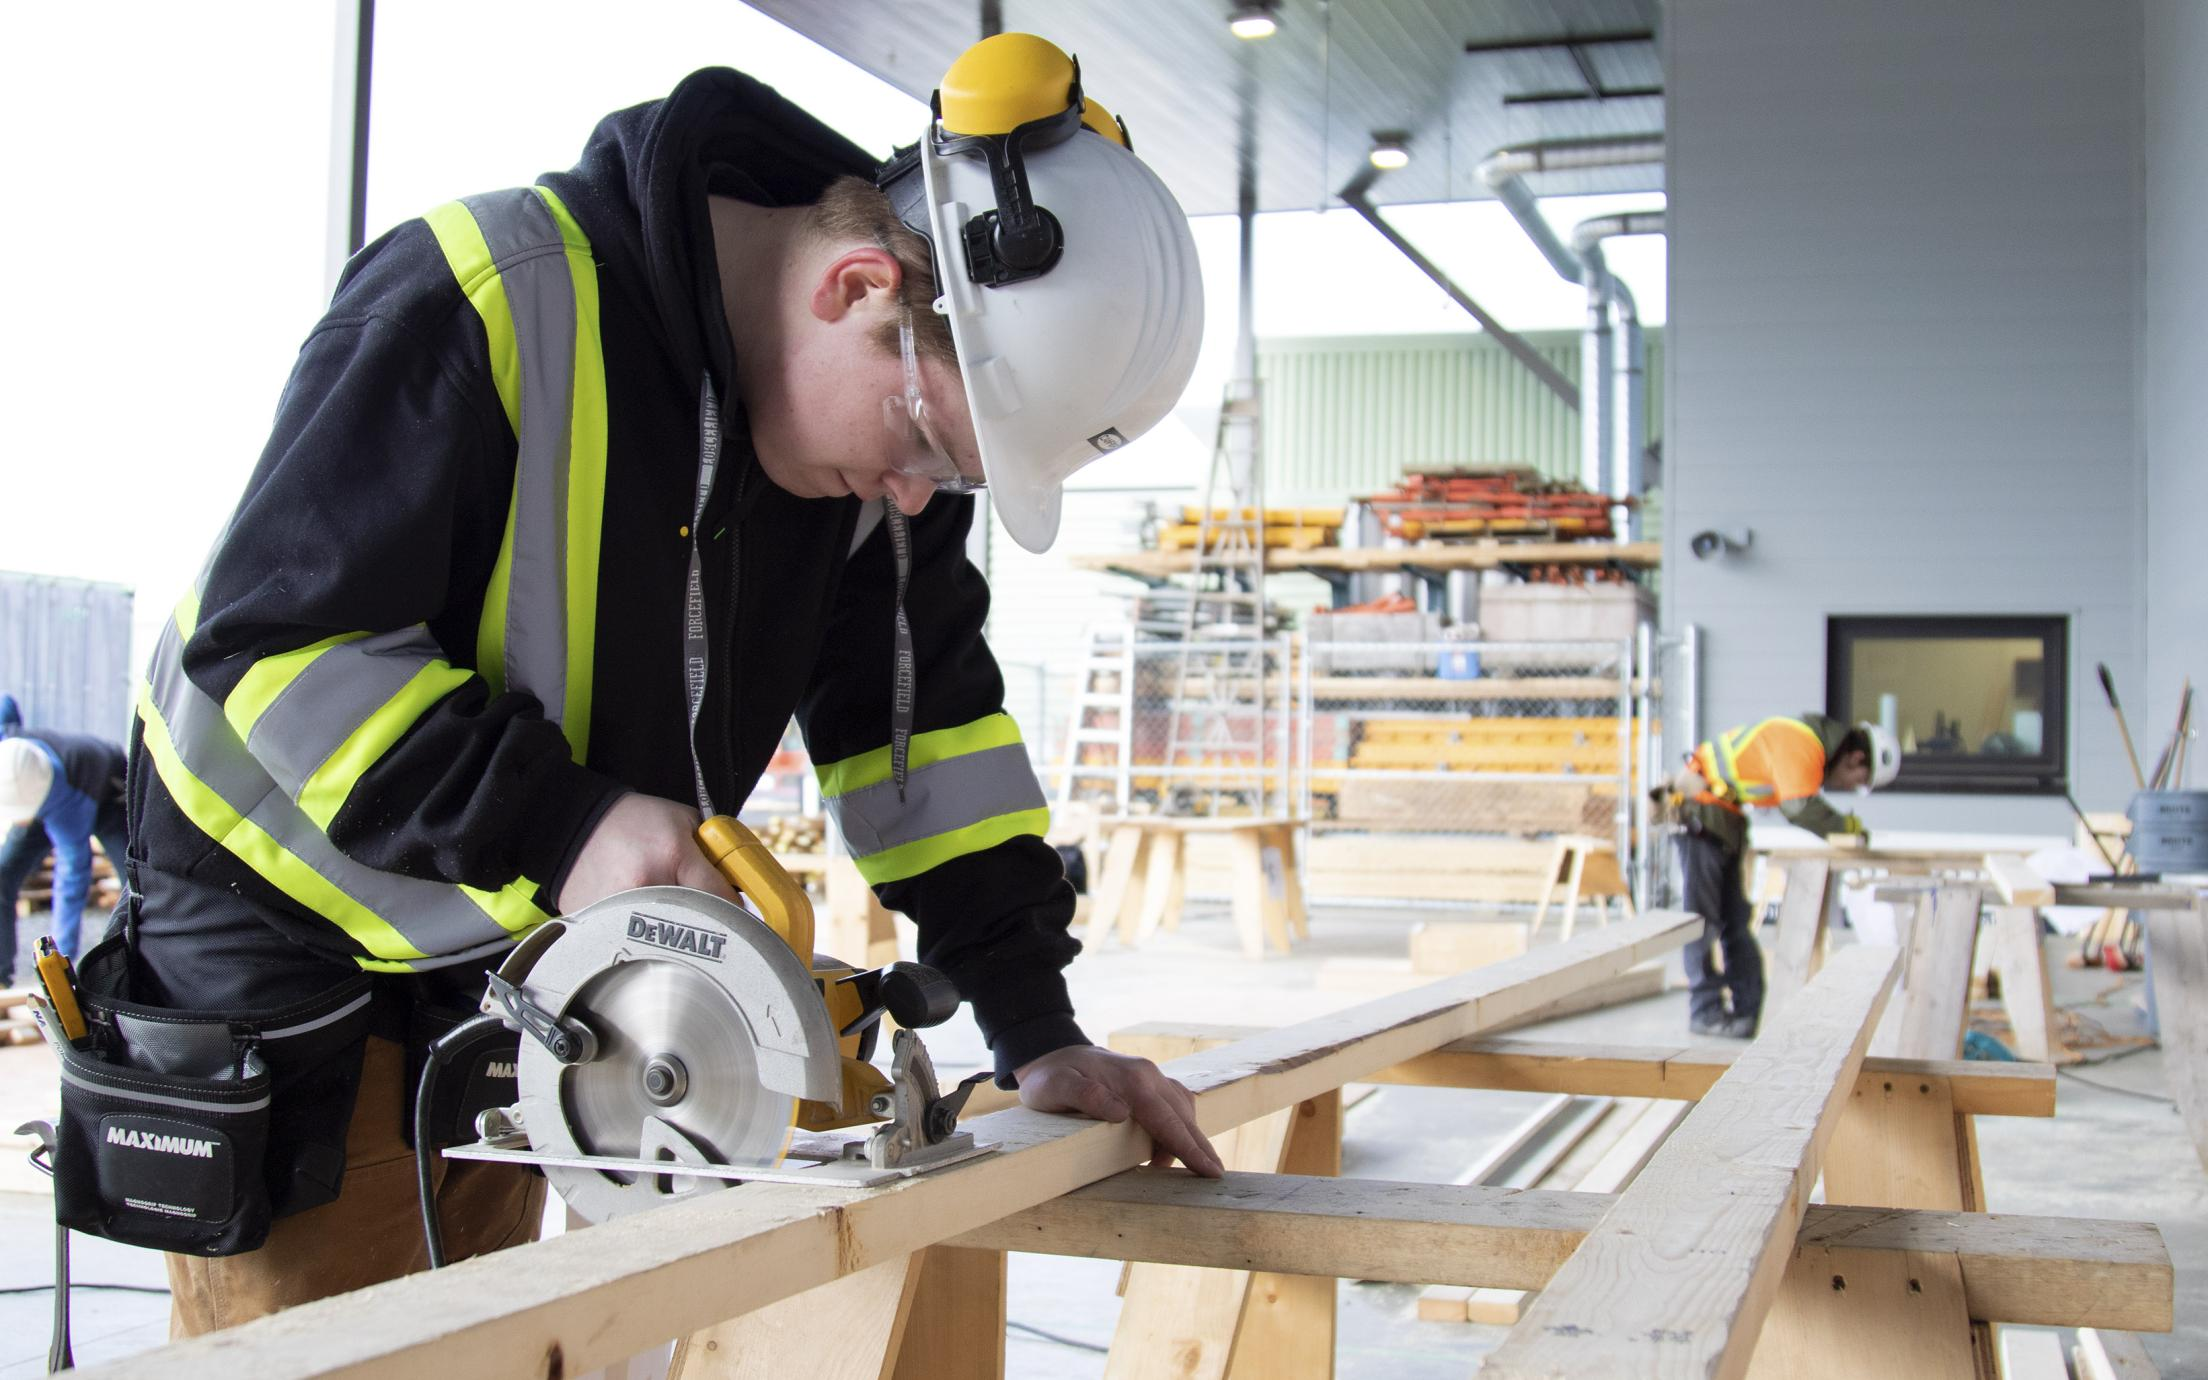 Five Reasons to Consider a Career in the Trades